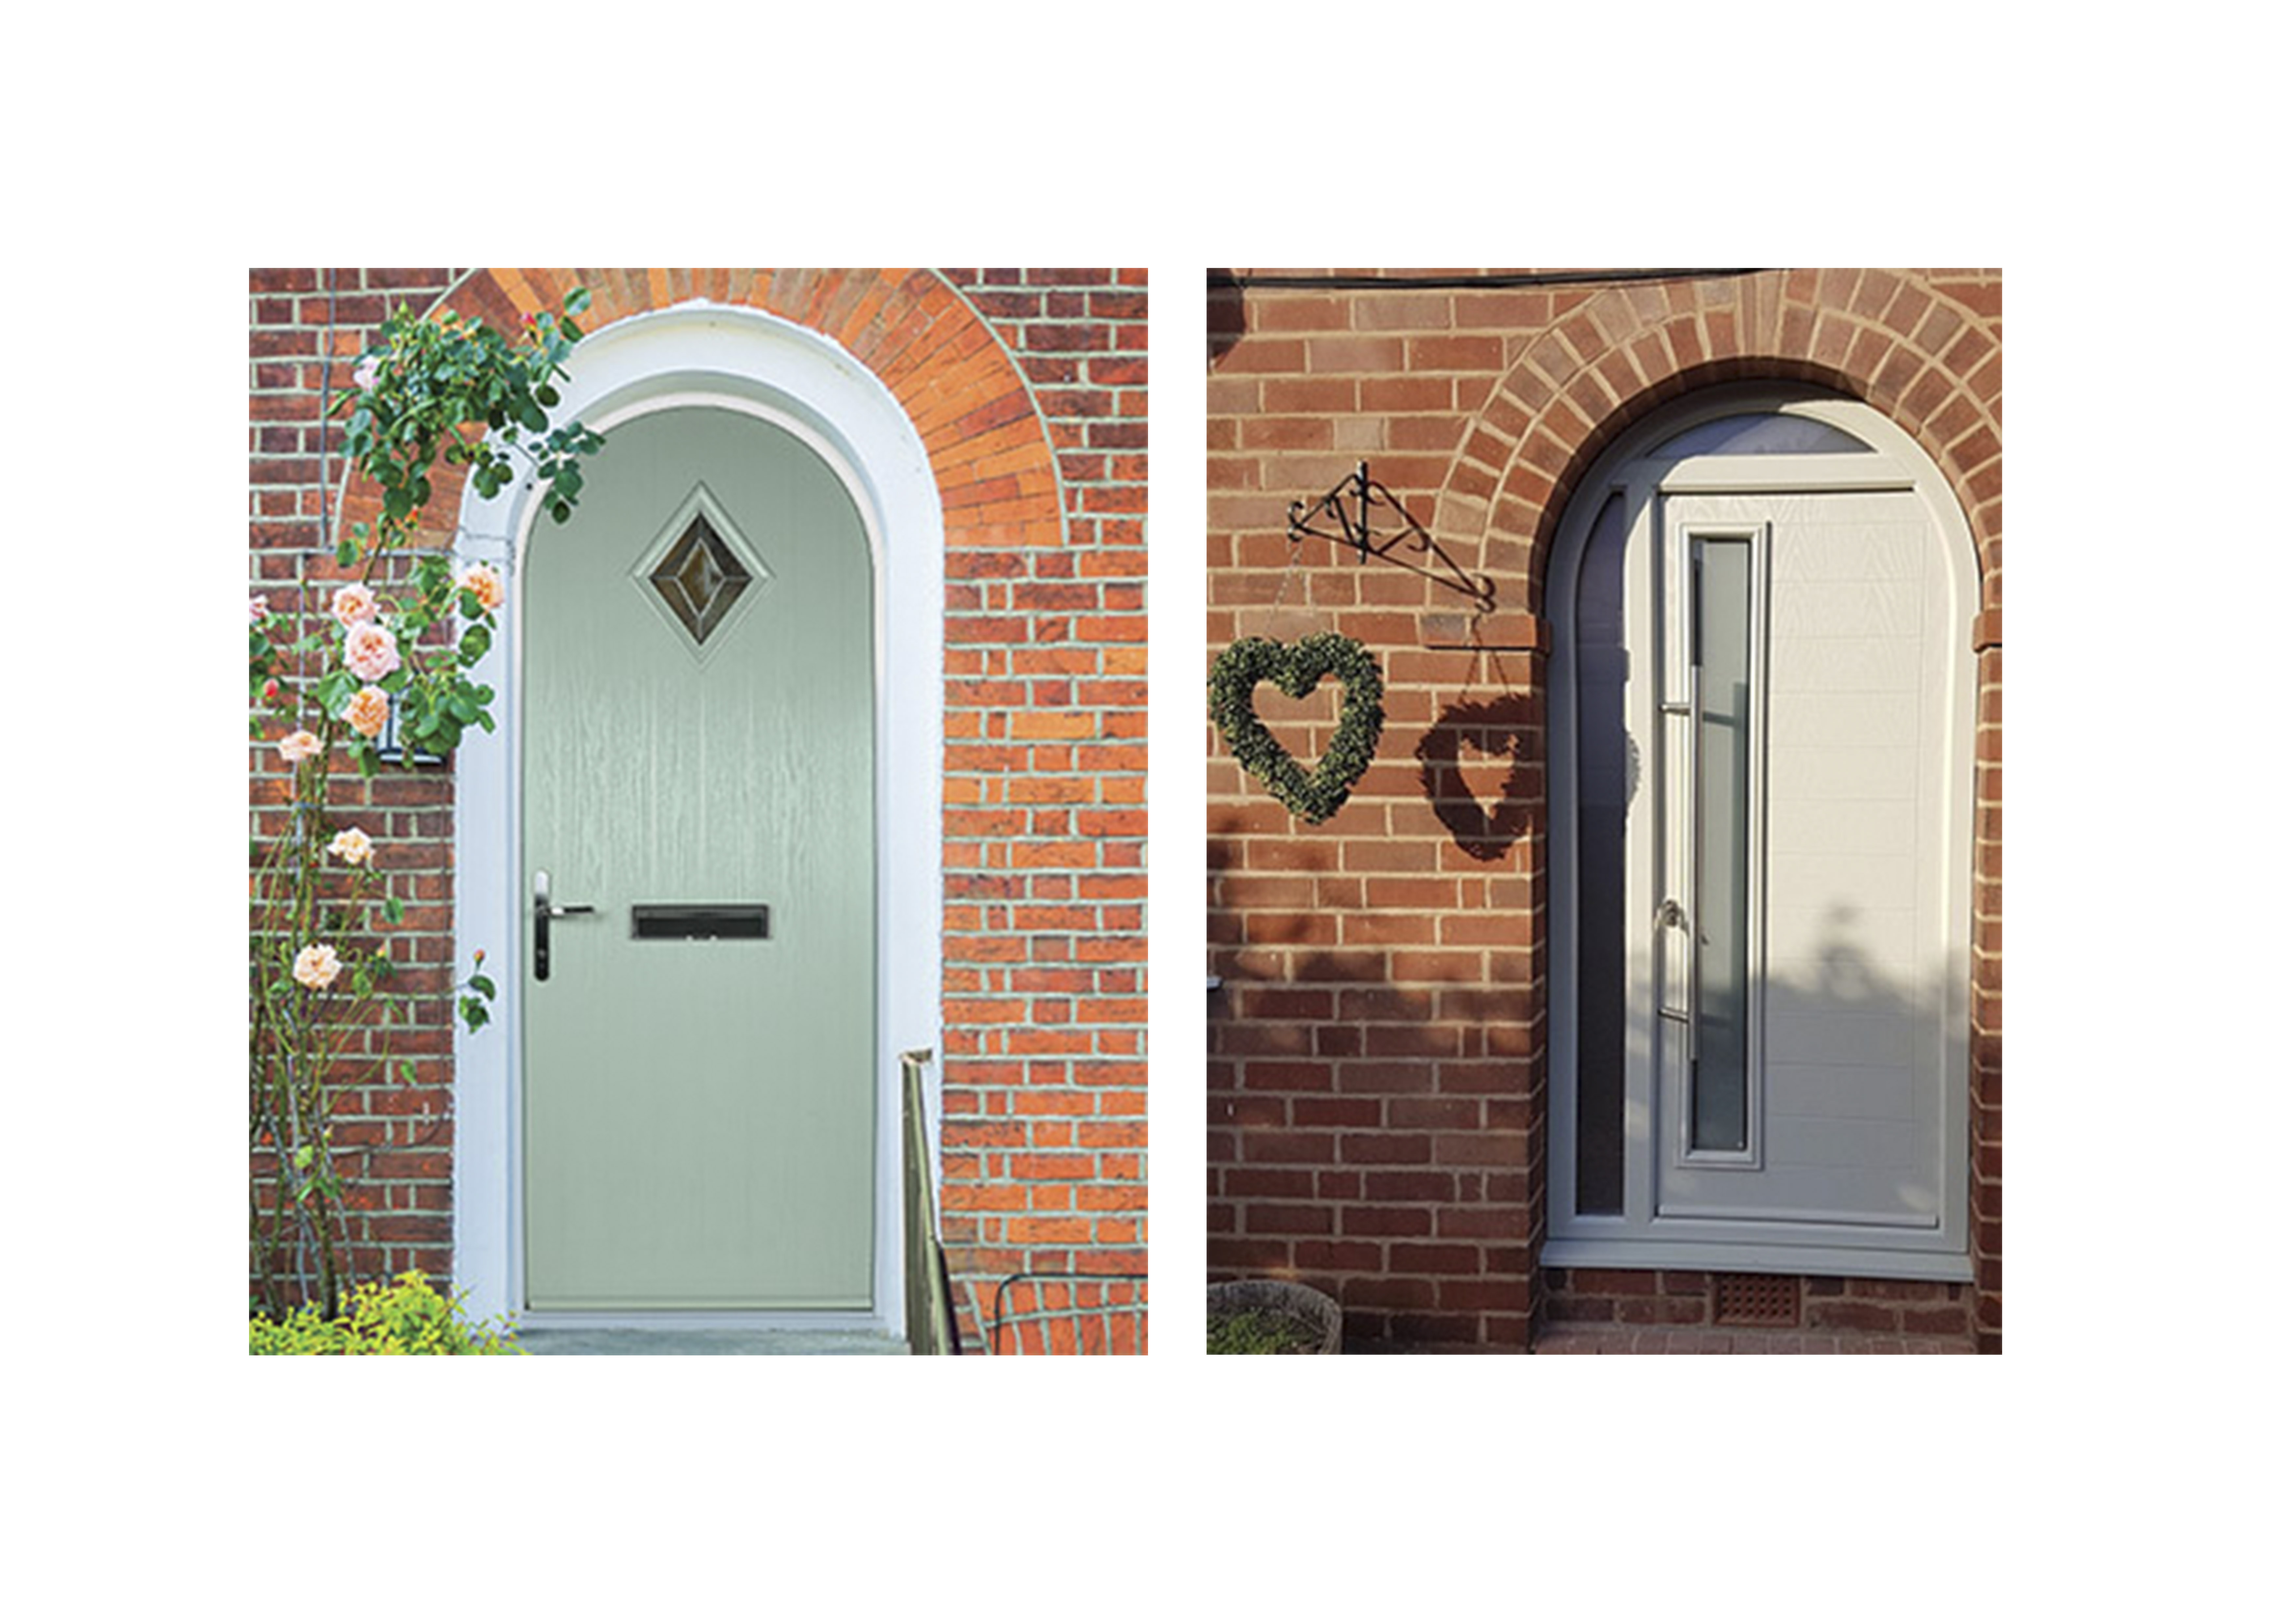 Arched Contemporary Doors vs Arched Traditional Doors